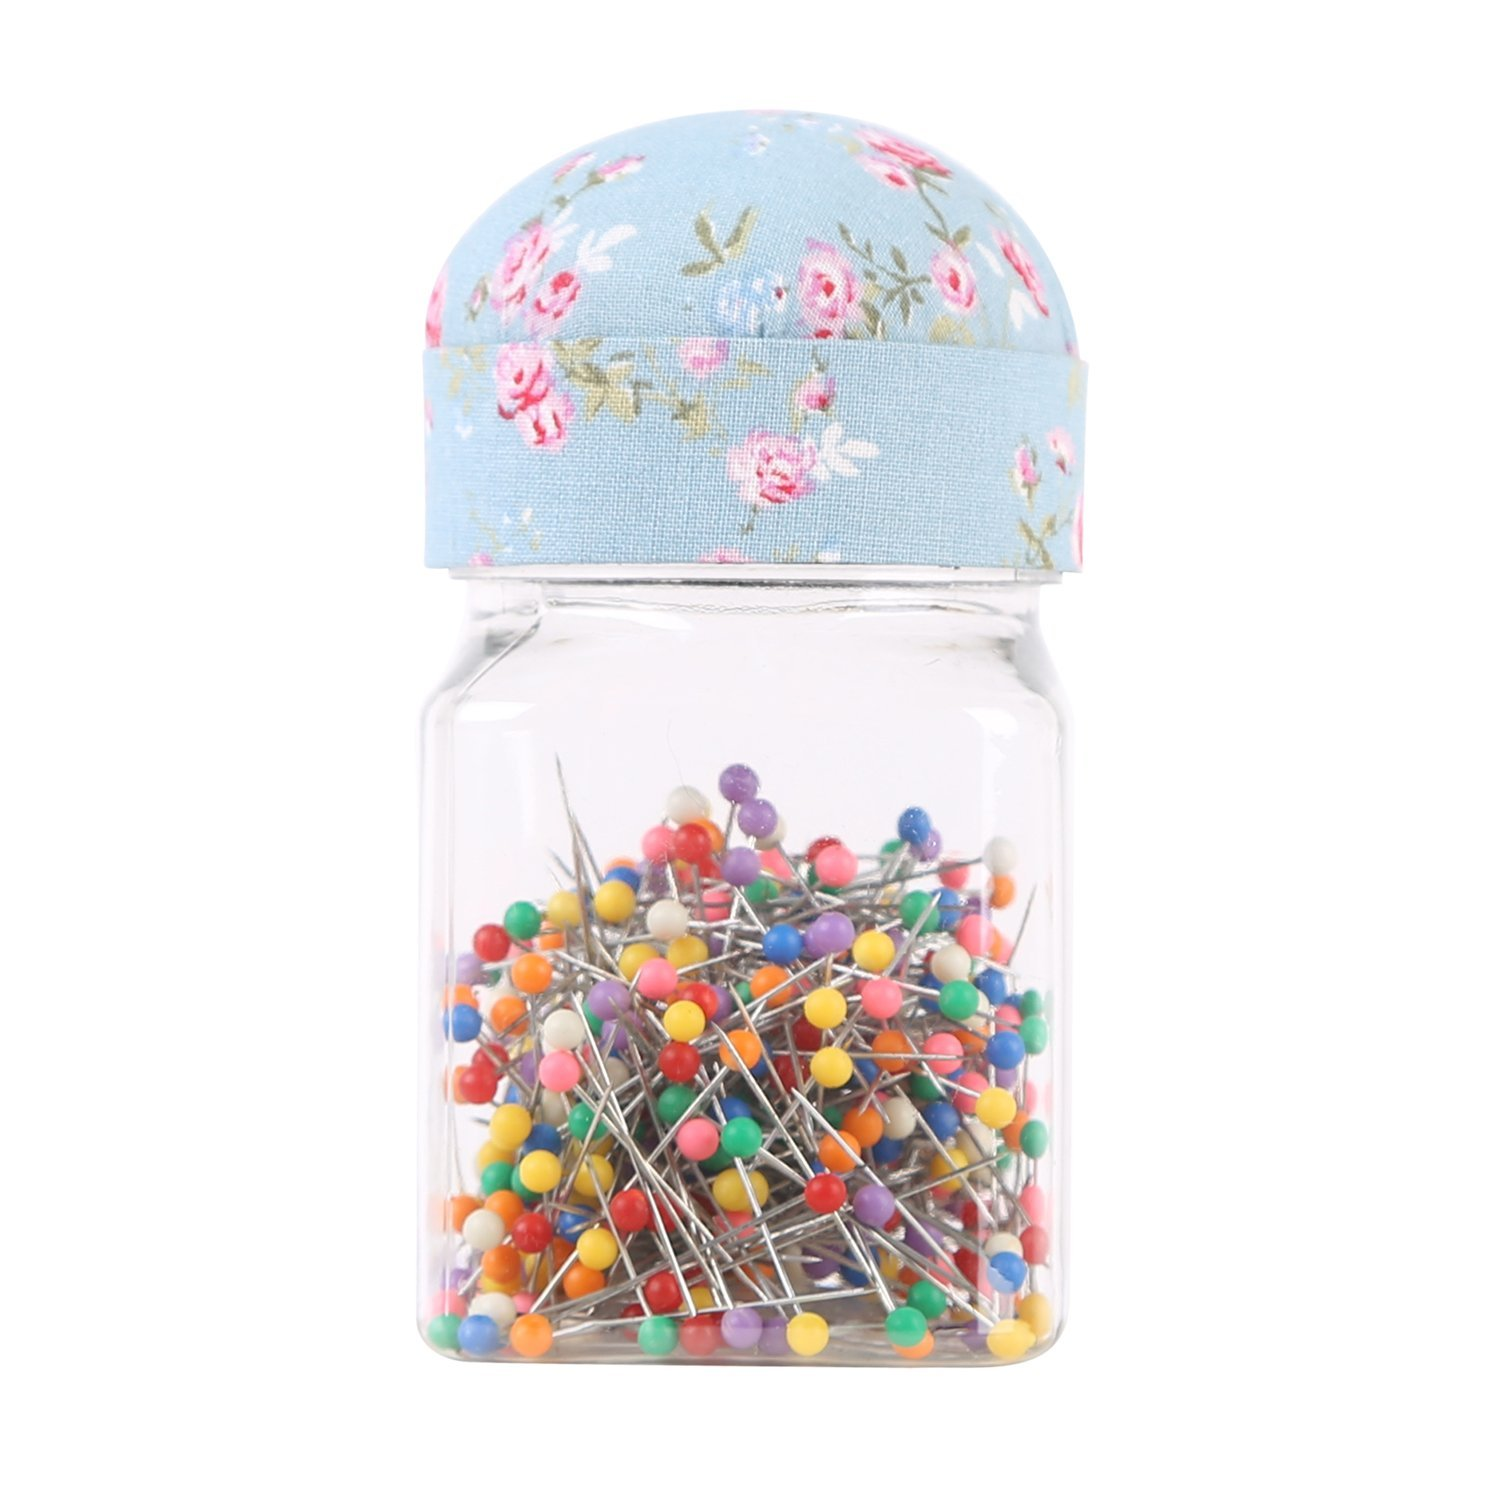 NEOVIVA Plastic Storage Jar for 300 Ball Head Quilting Pins with Pin Cushion Lid for Easy Sewing, Floral Blue Ocean by Neoviva